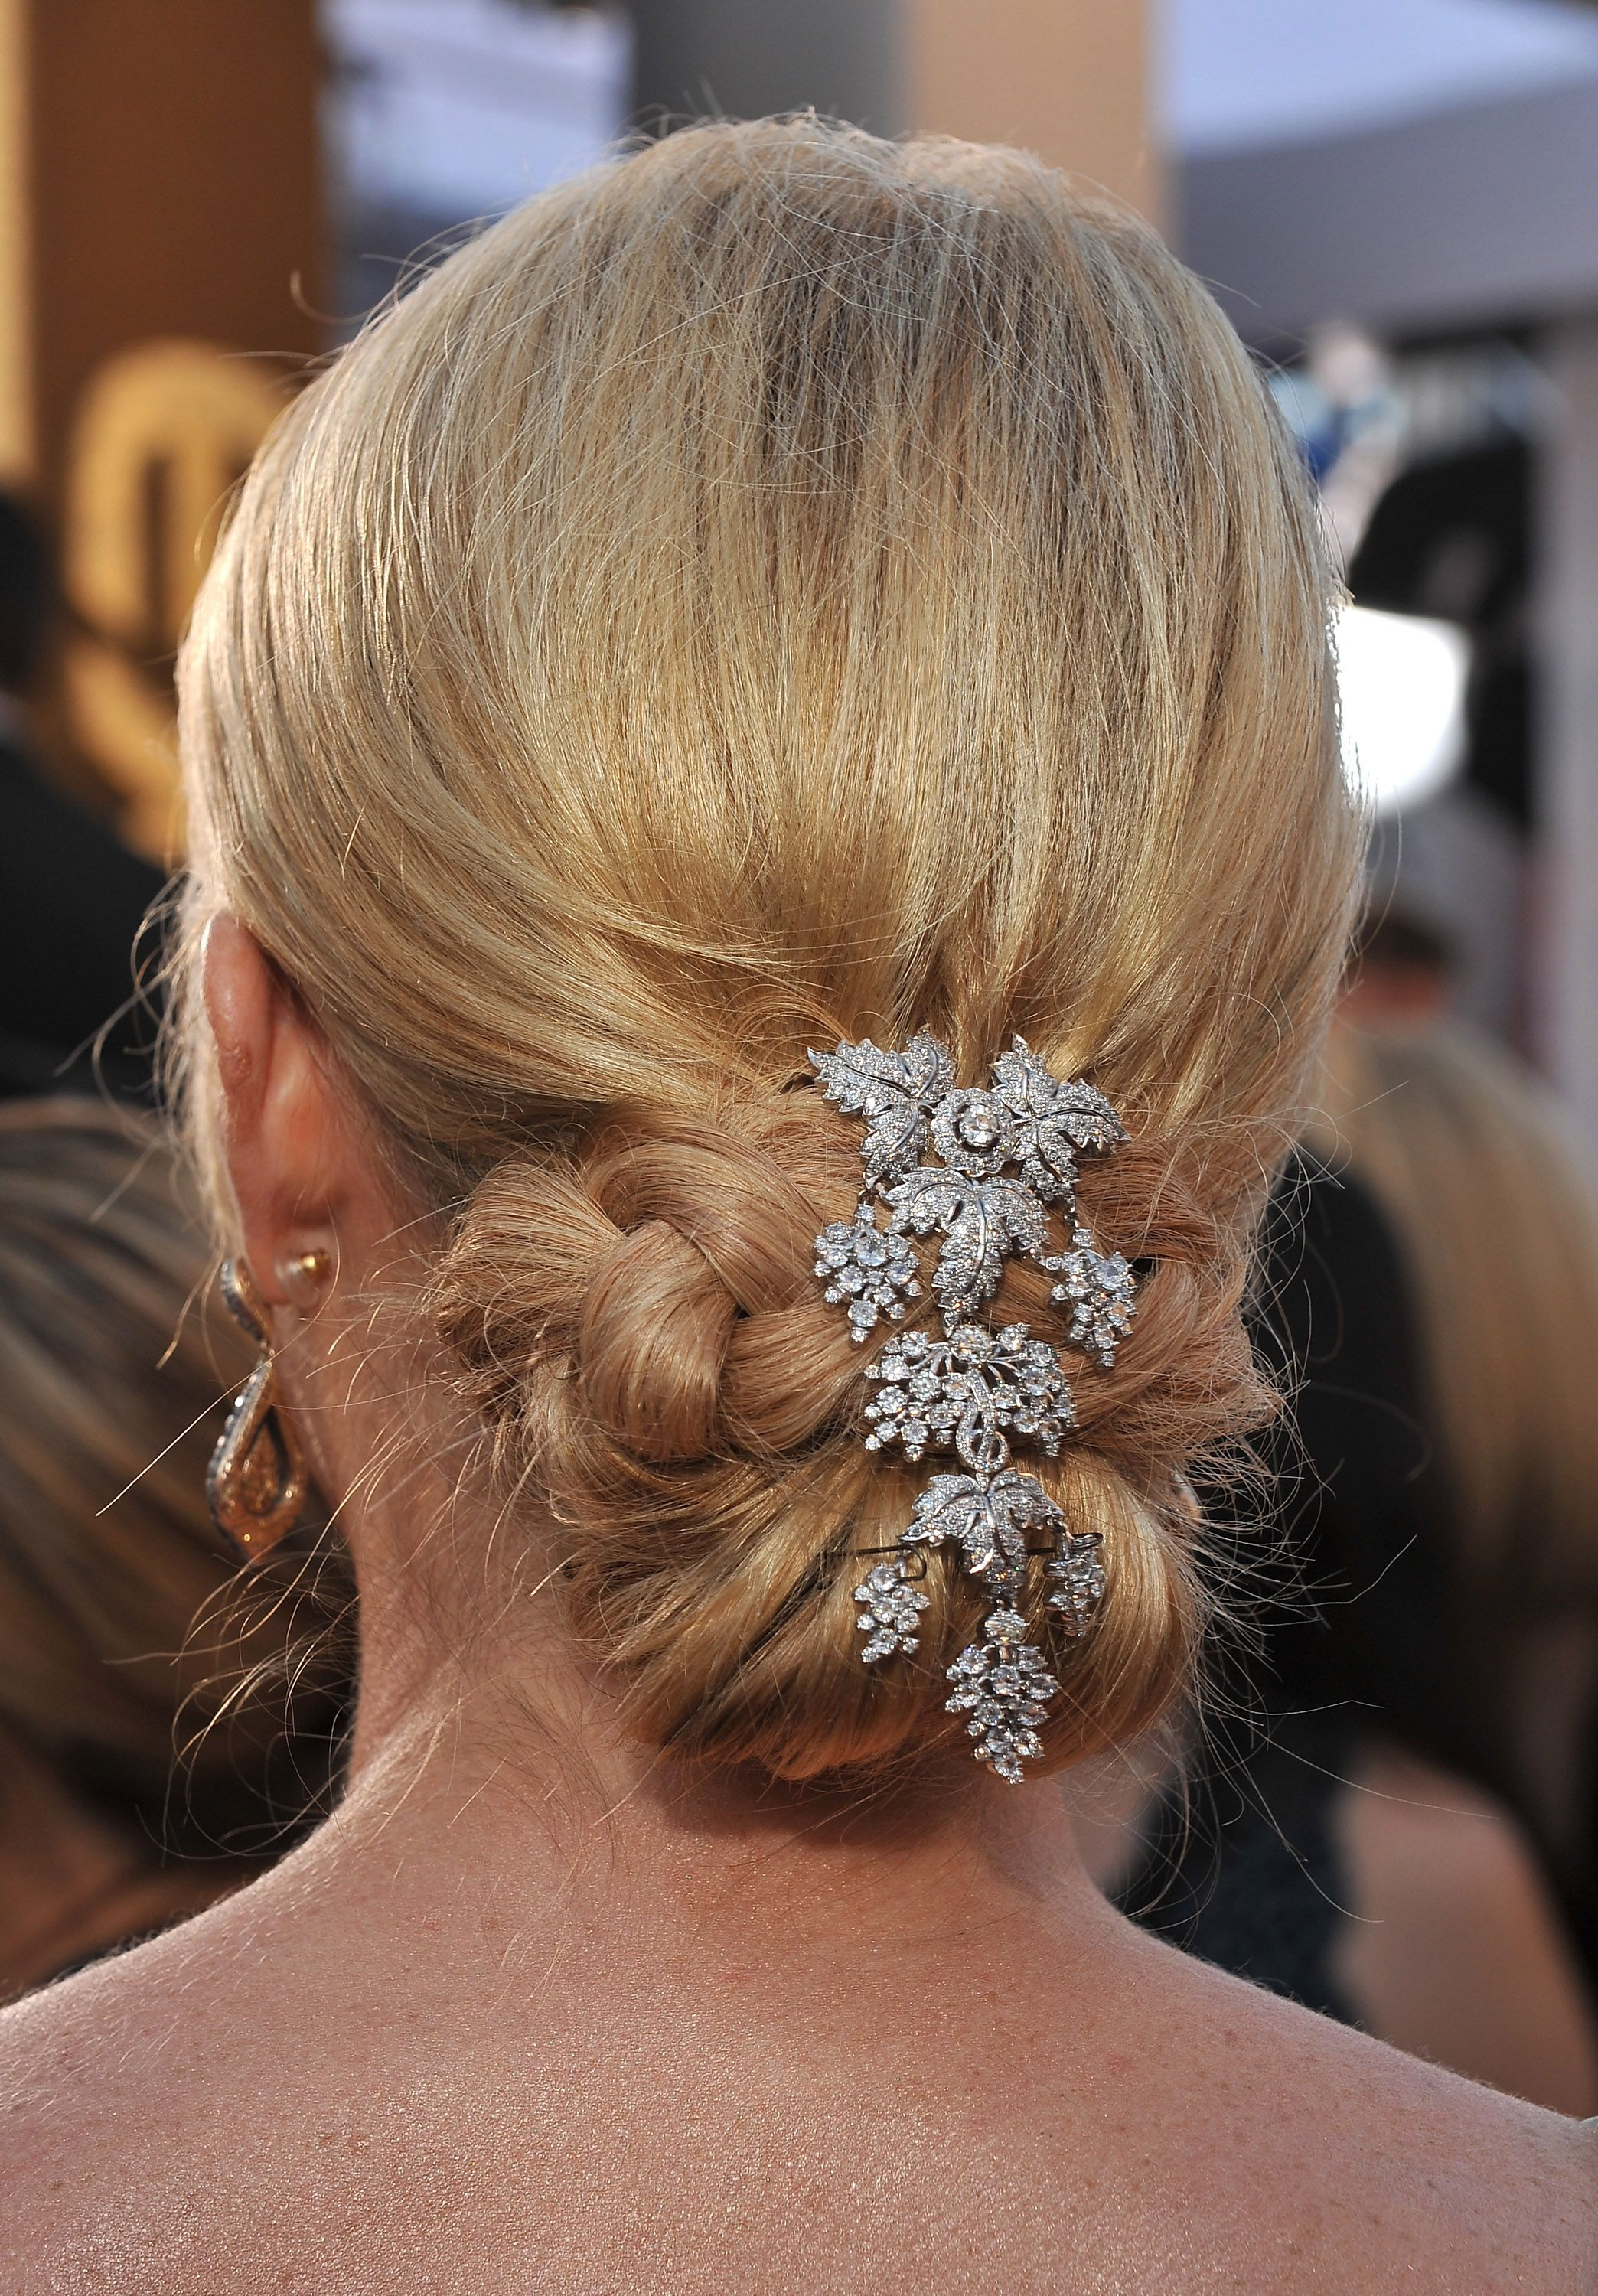 21 Best Wedding Hairstyles For Long Hair How To Style Long Hair For Weddings